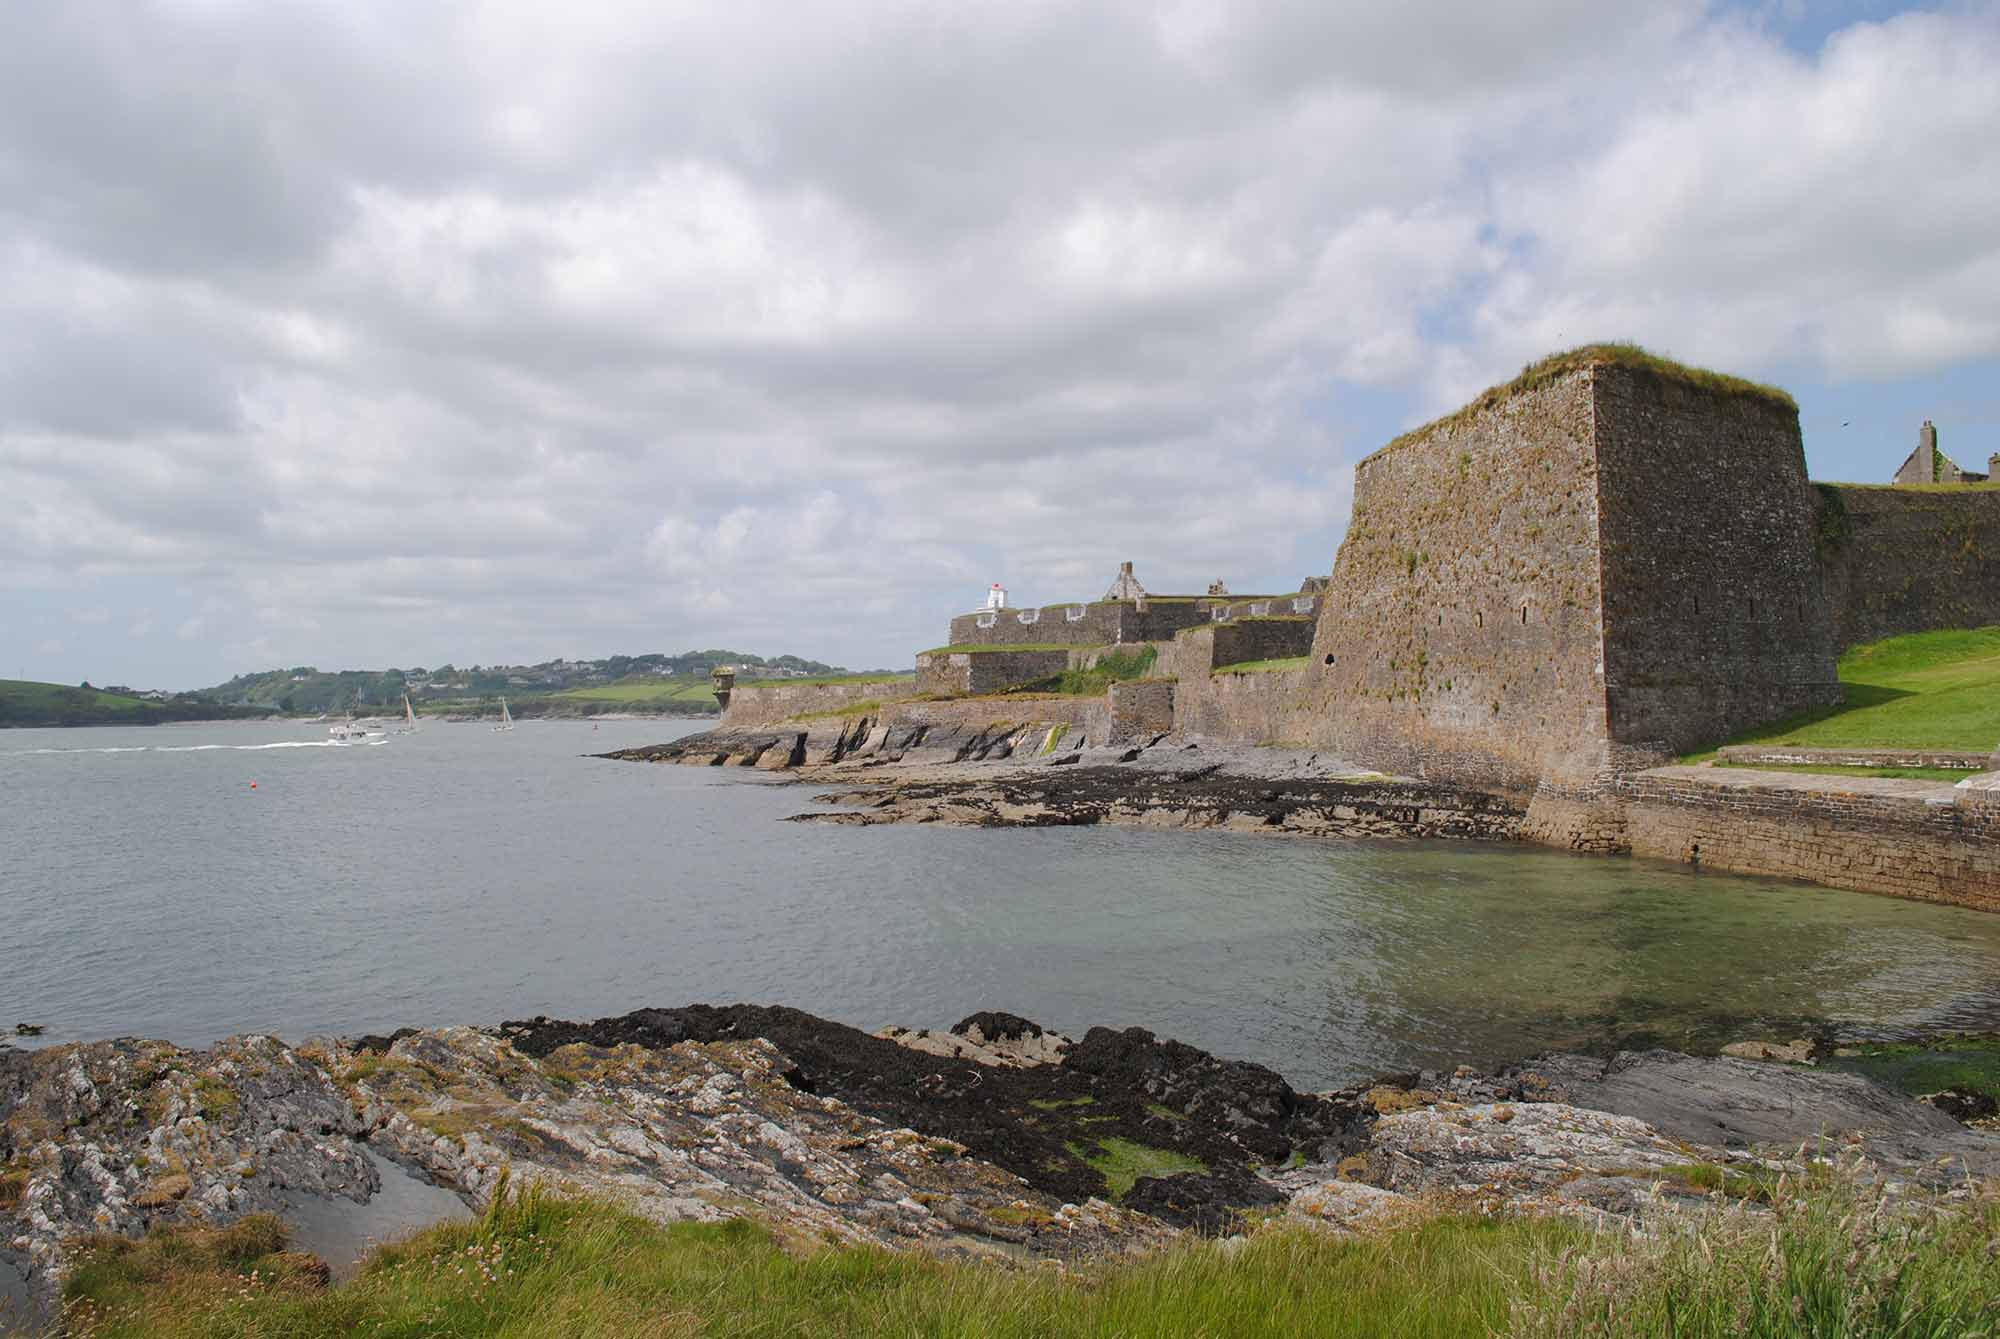 View of Charles Bastion from Charles Fort Coastal Walk